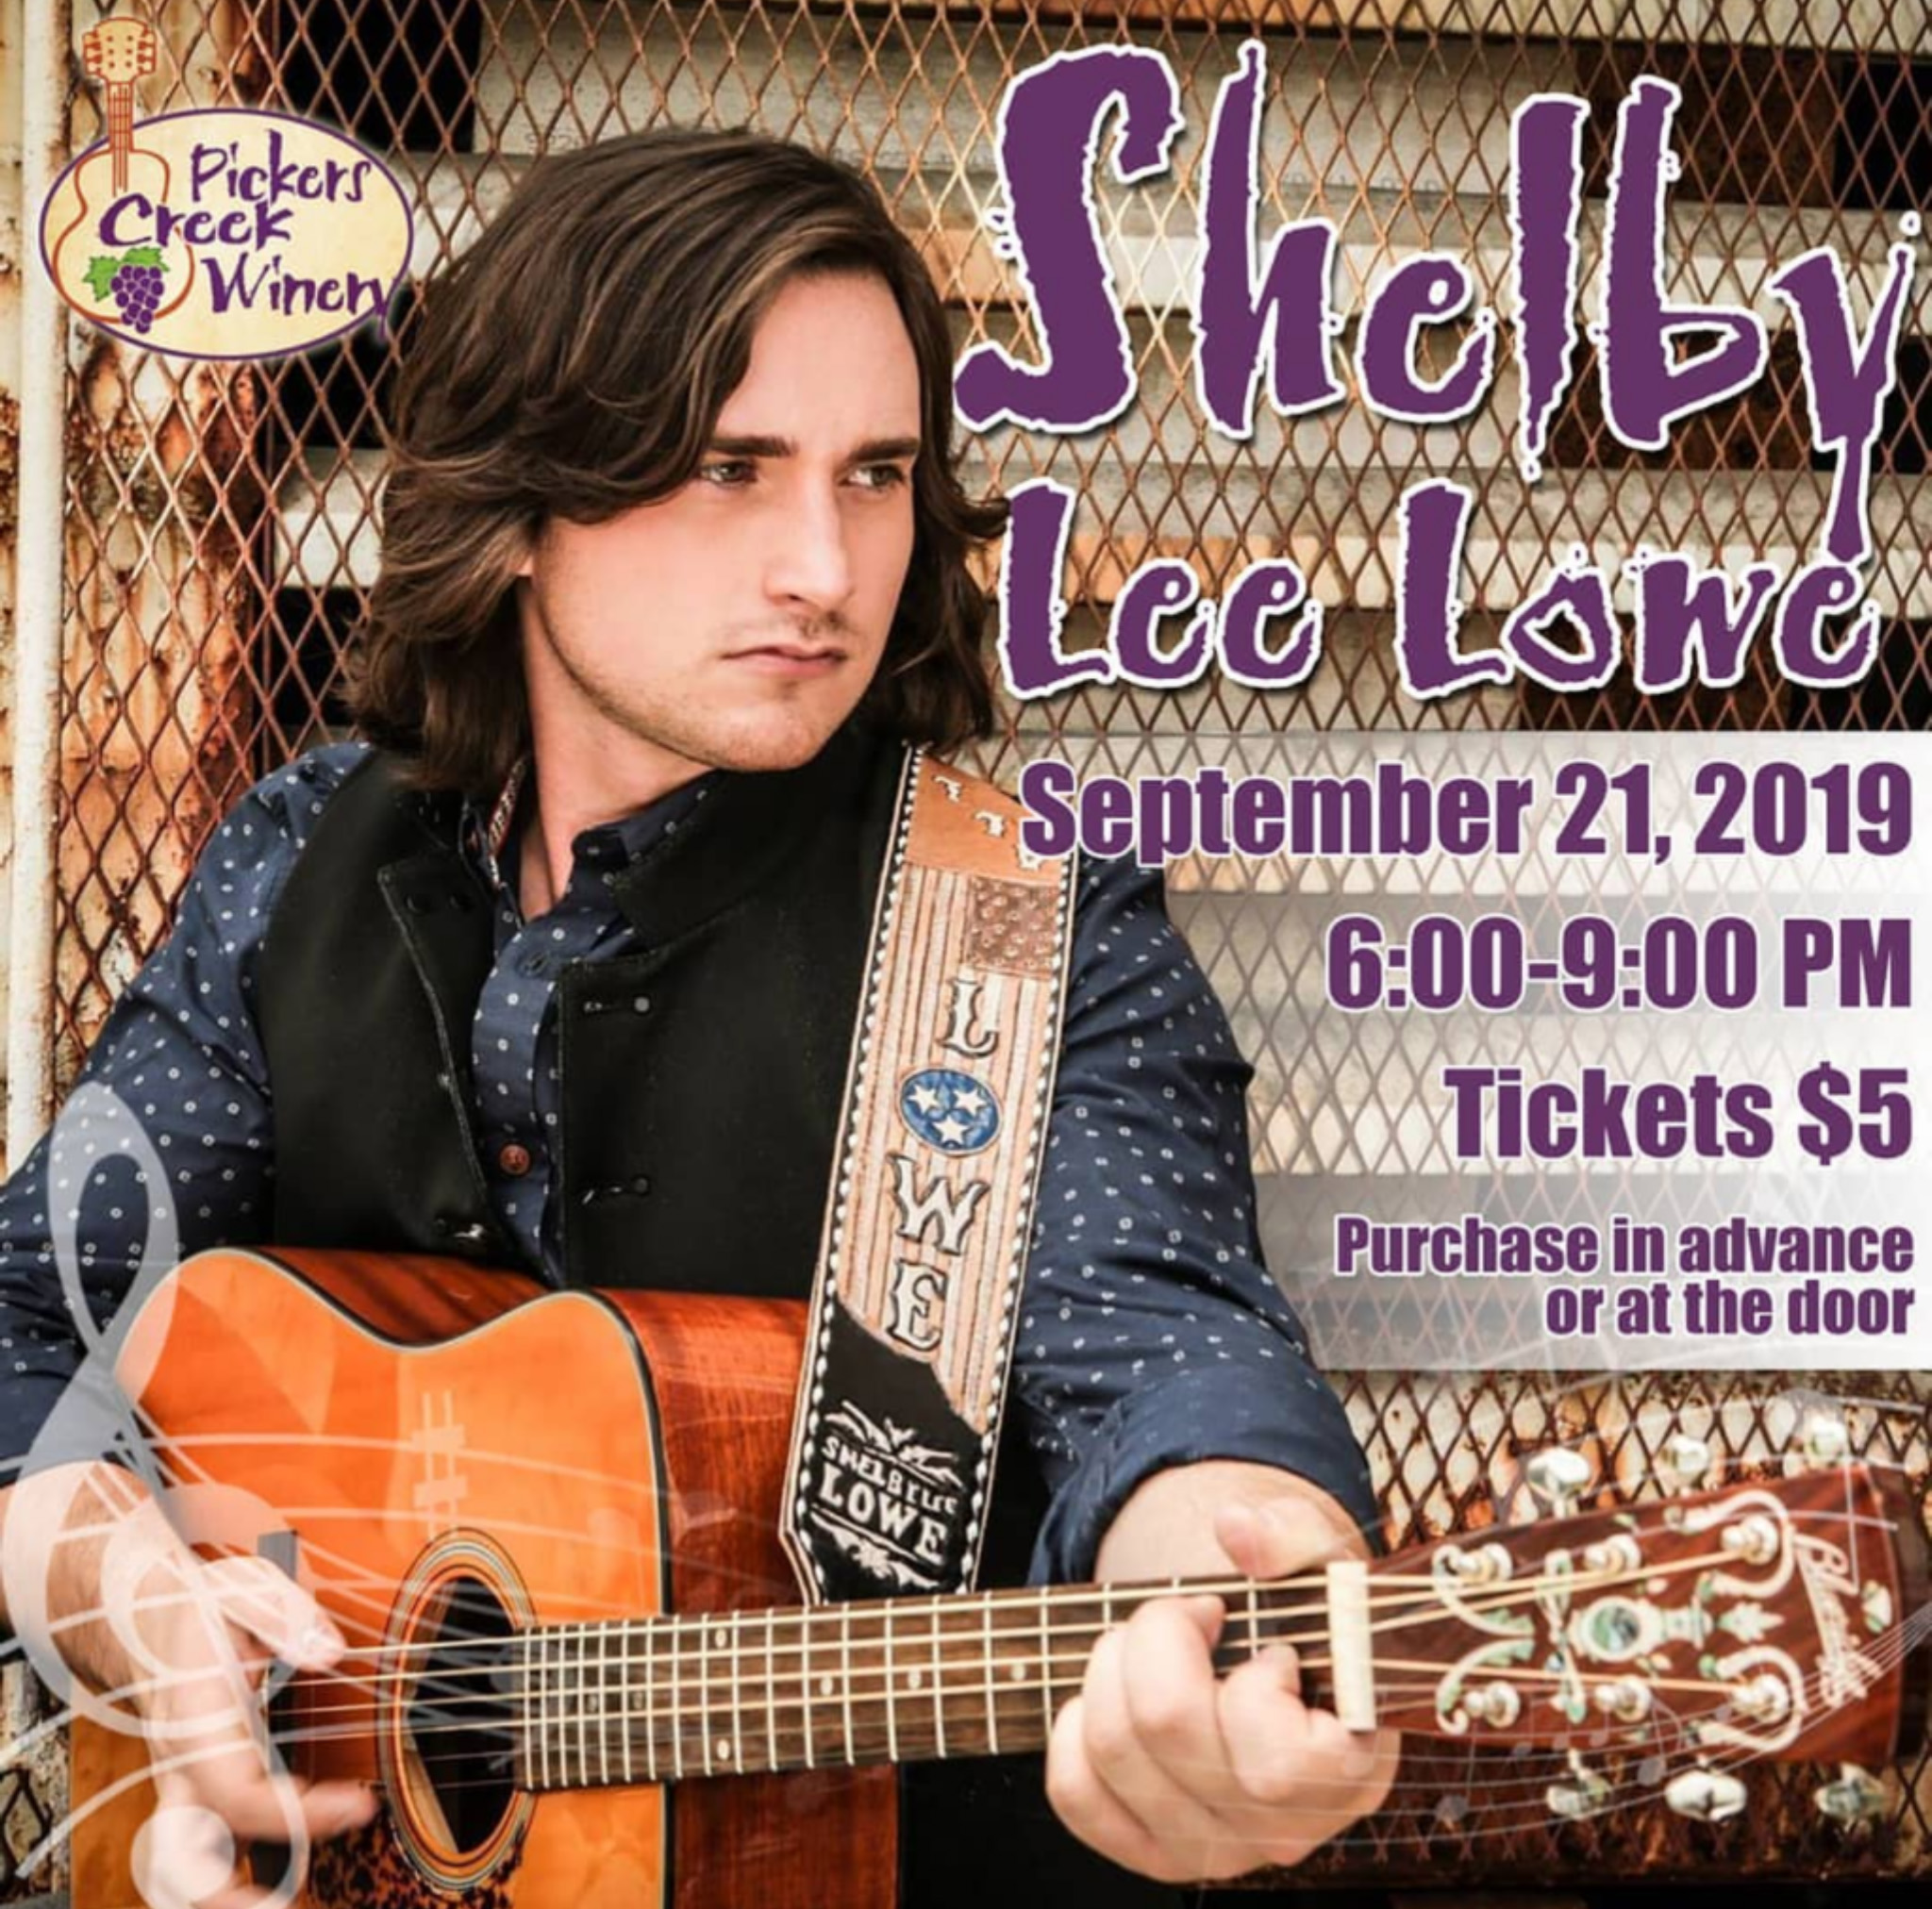 Pickers Shelby Lee